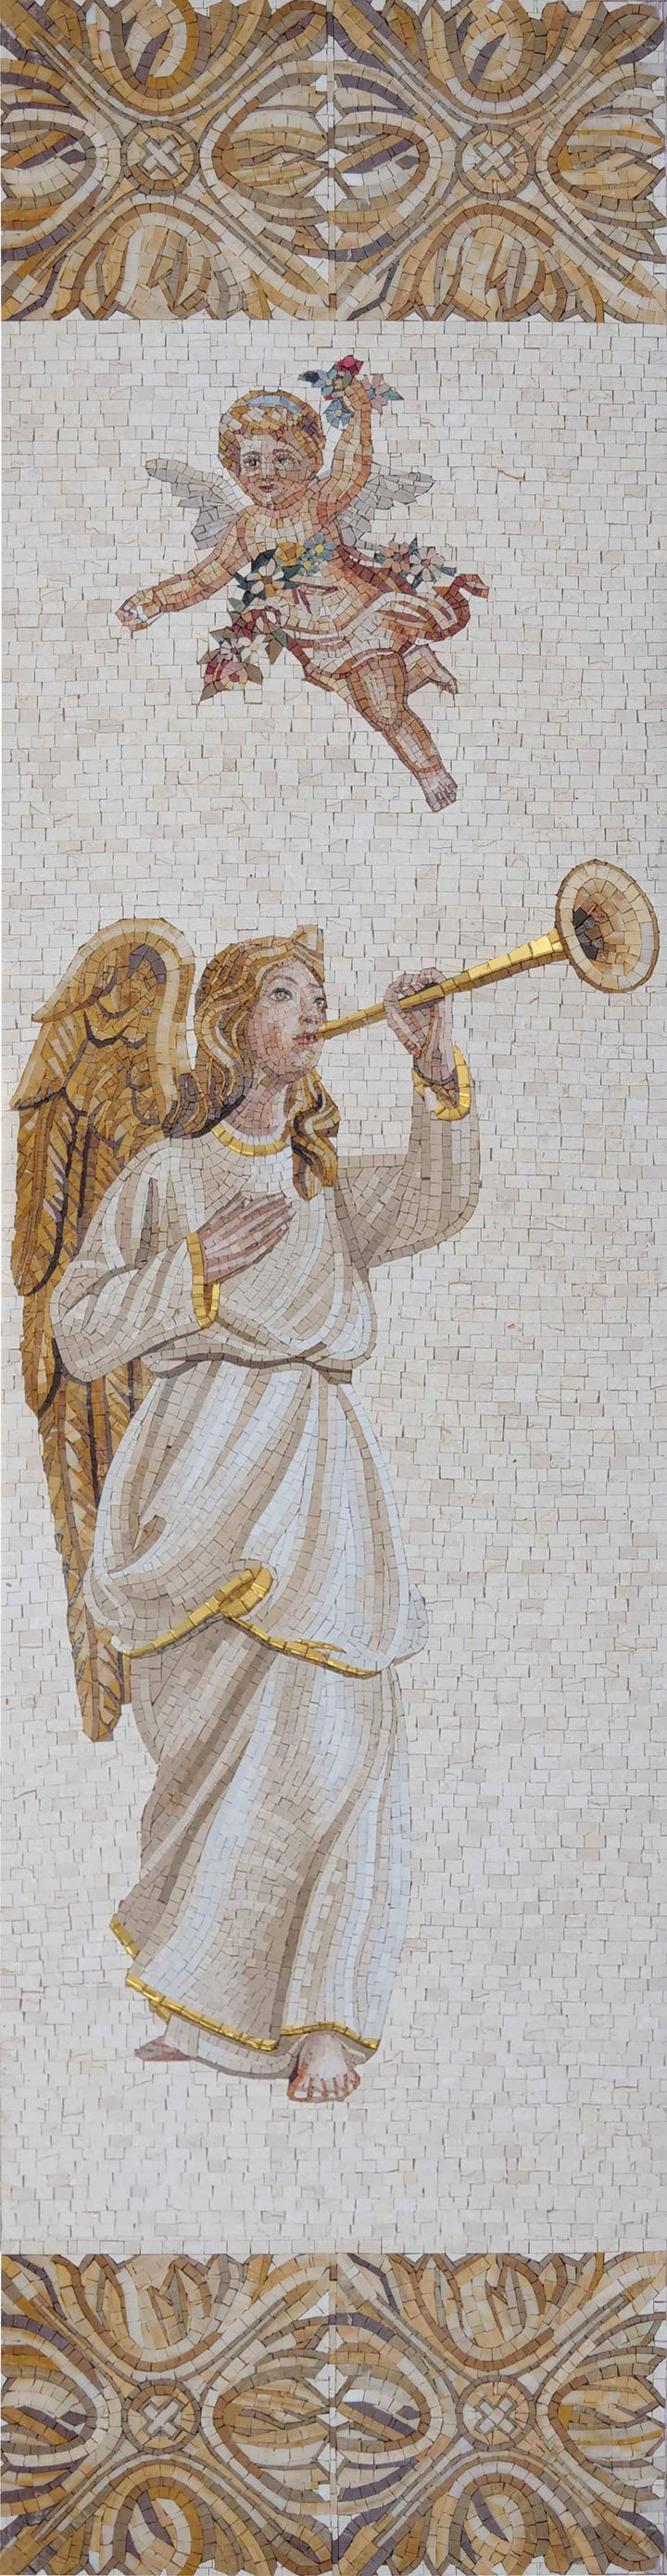 Angel Playing the Trumpet - Mosaic Art